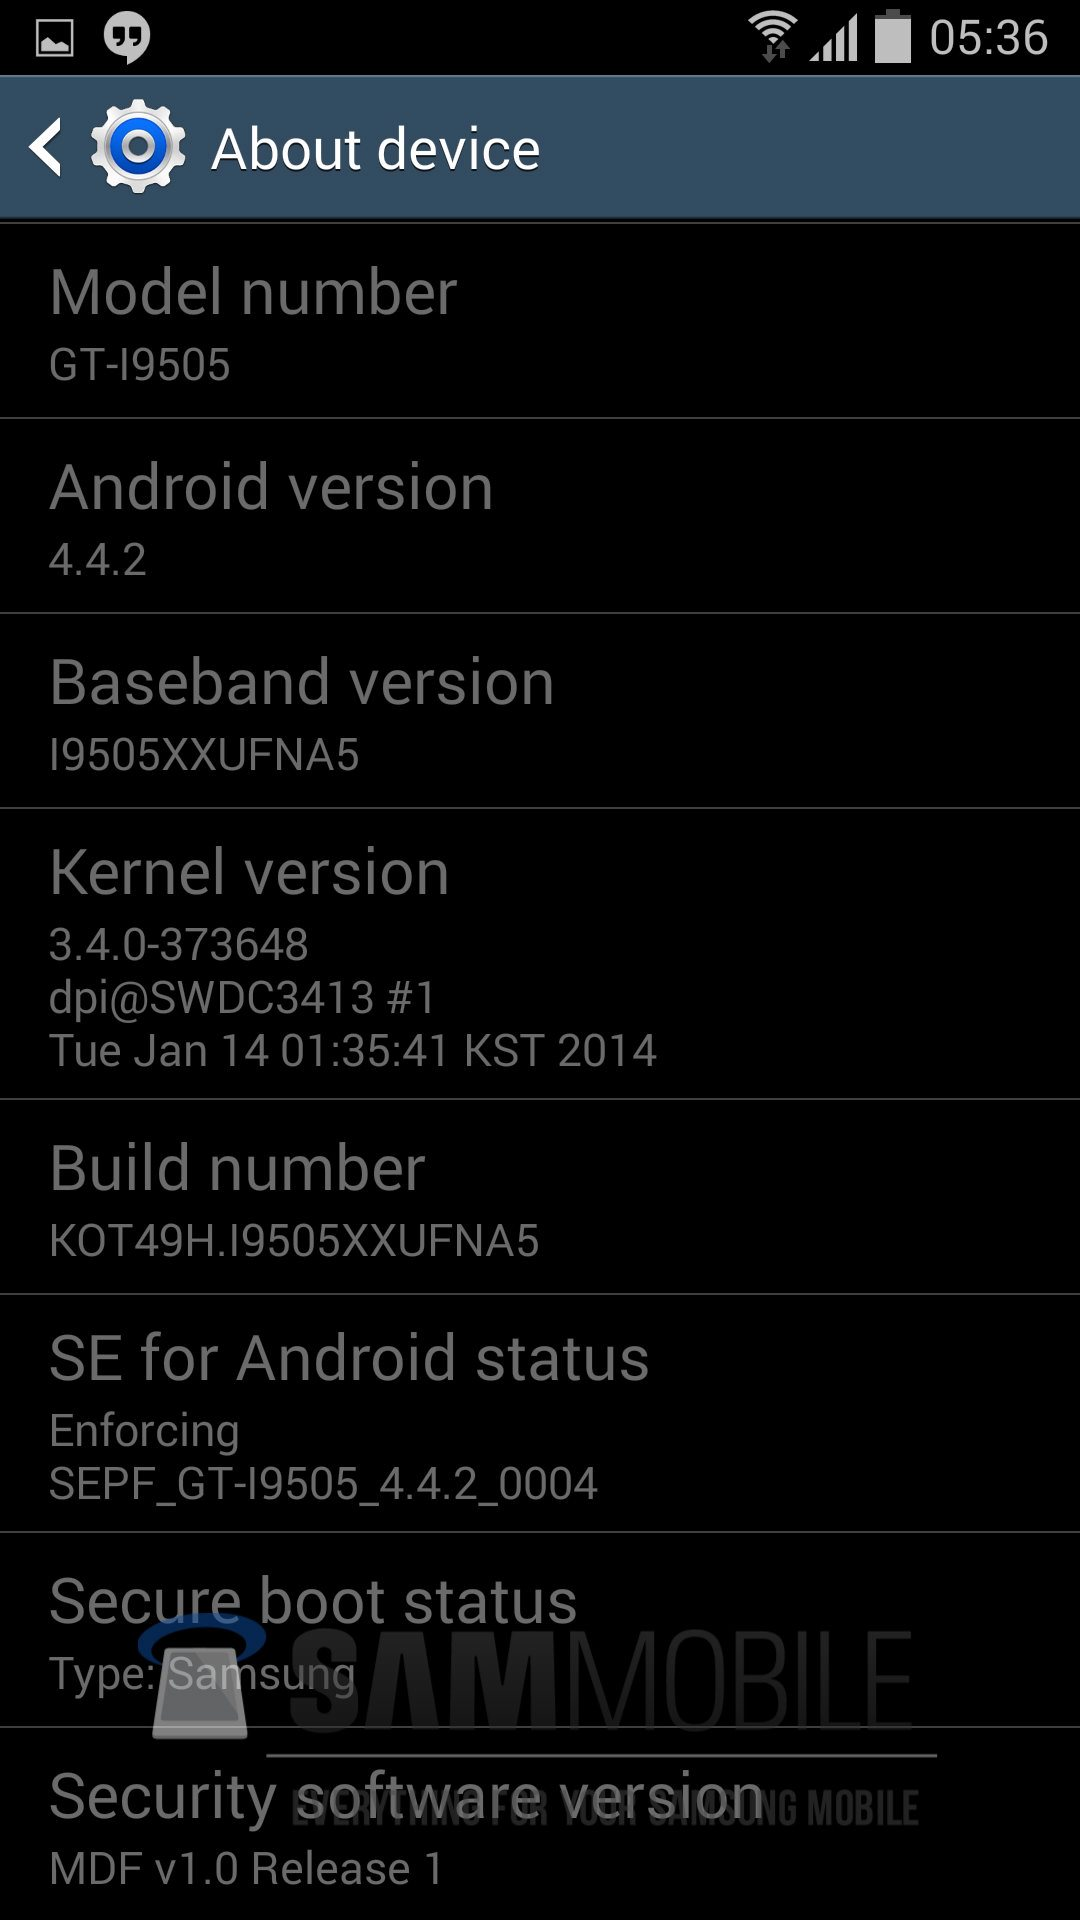 I9505XXUFNA5 Android 4.4.2 KitKat Test Firmware for Galaxy S4 Leaked